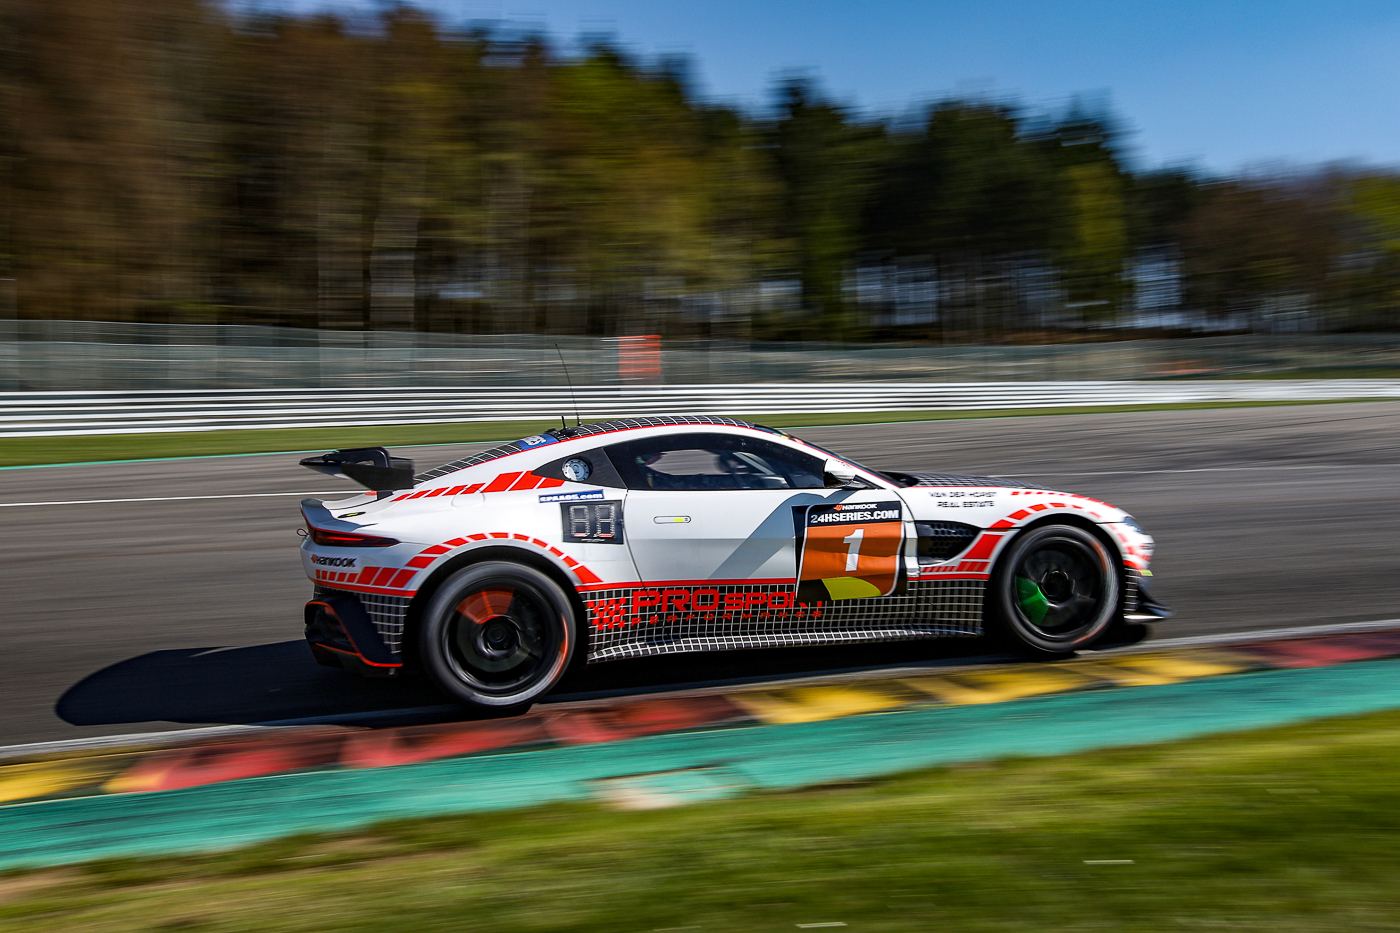 On The Grid With The Aston Martin Vantage Gt4